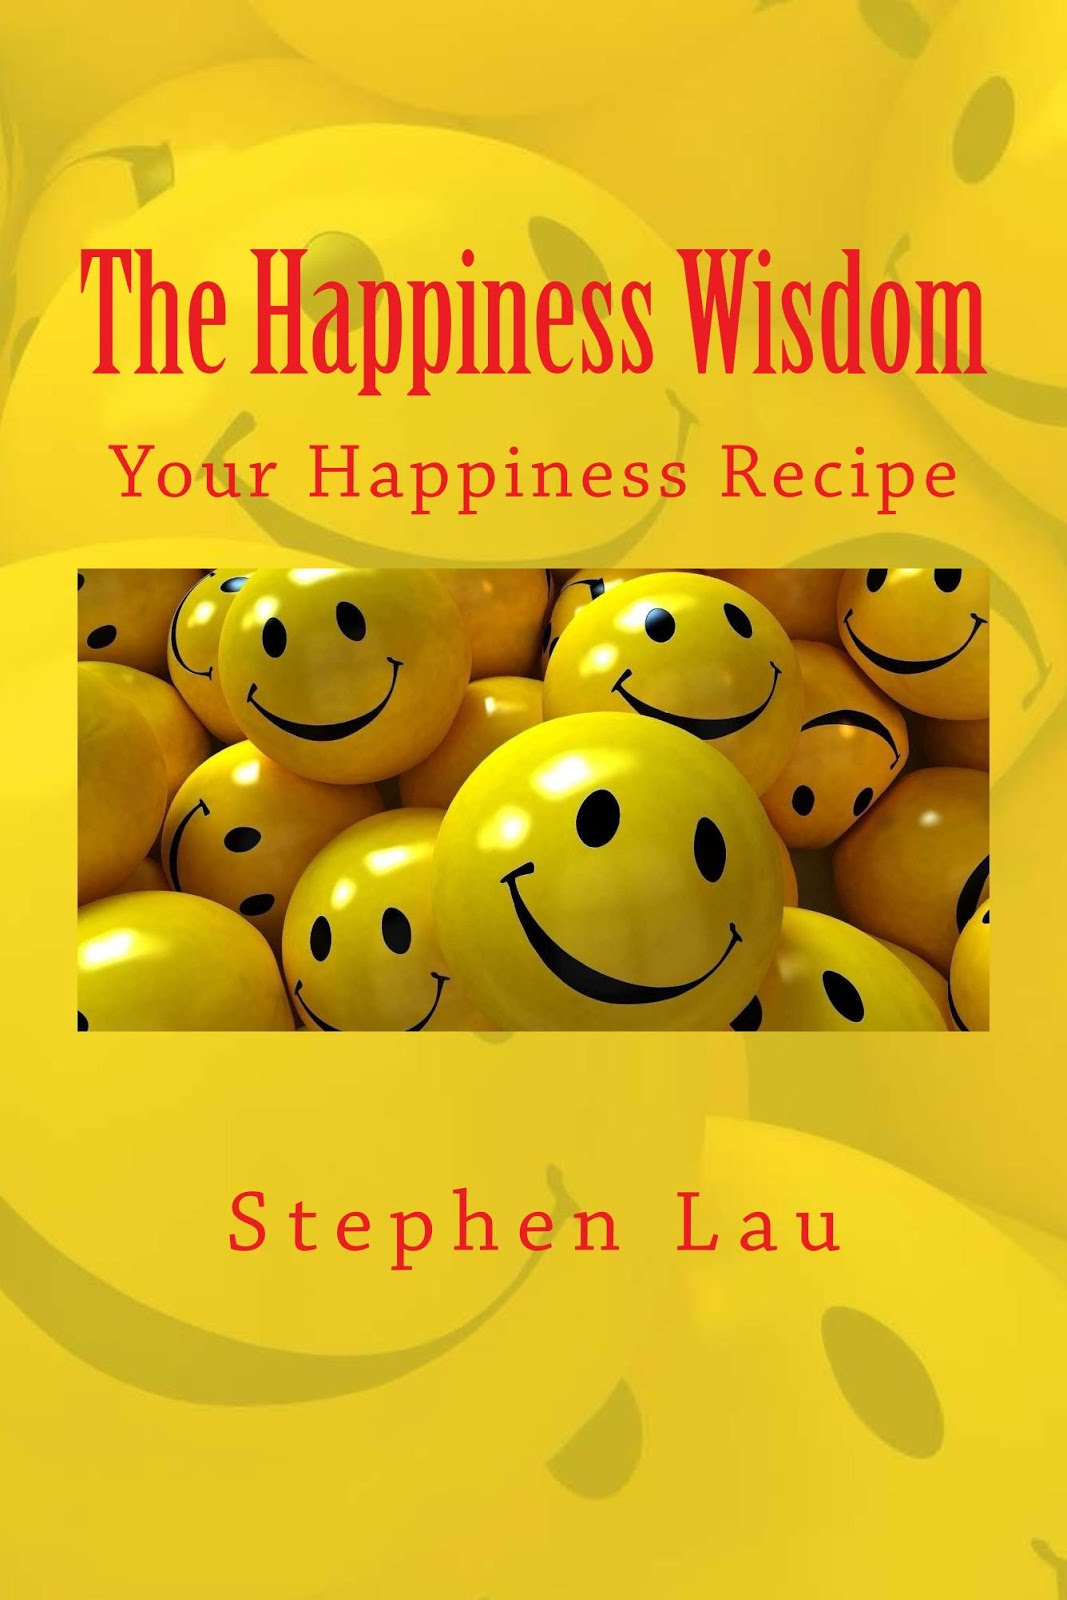 <b>The Happiness Wisdom</b>